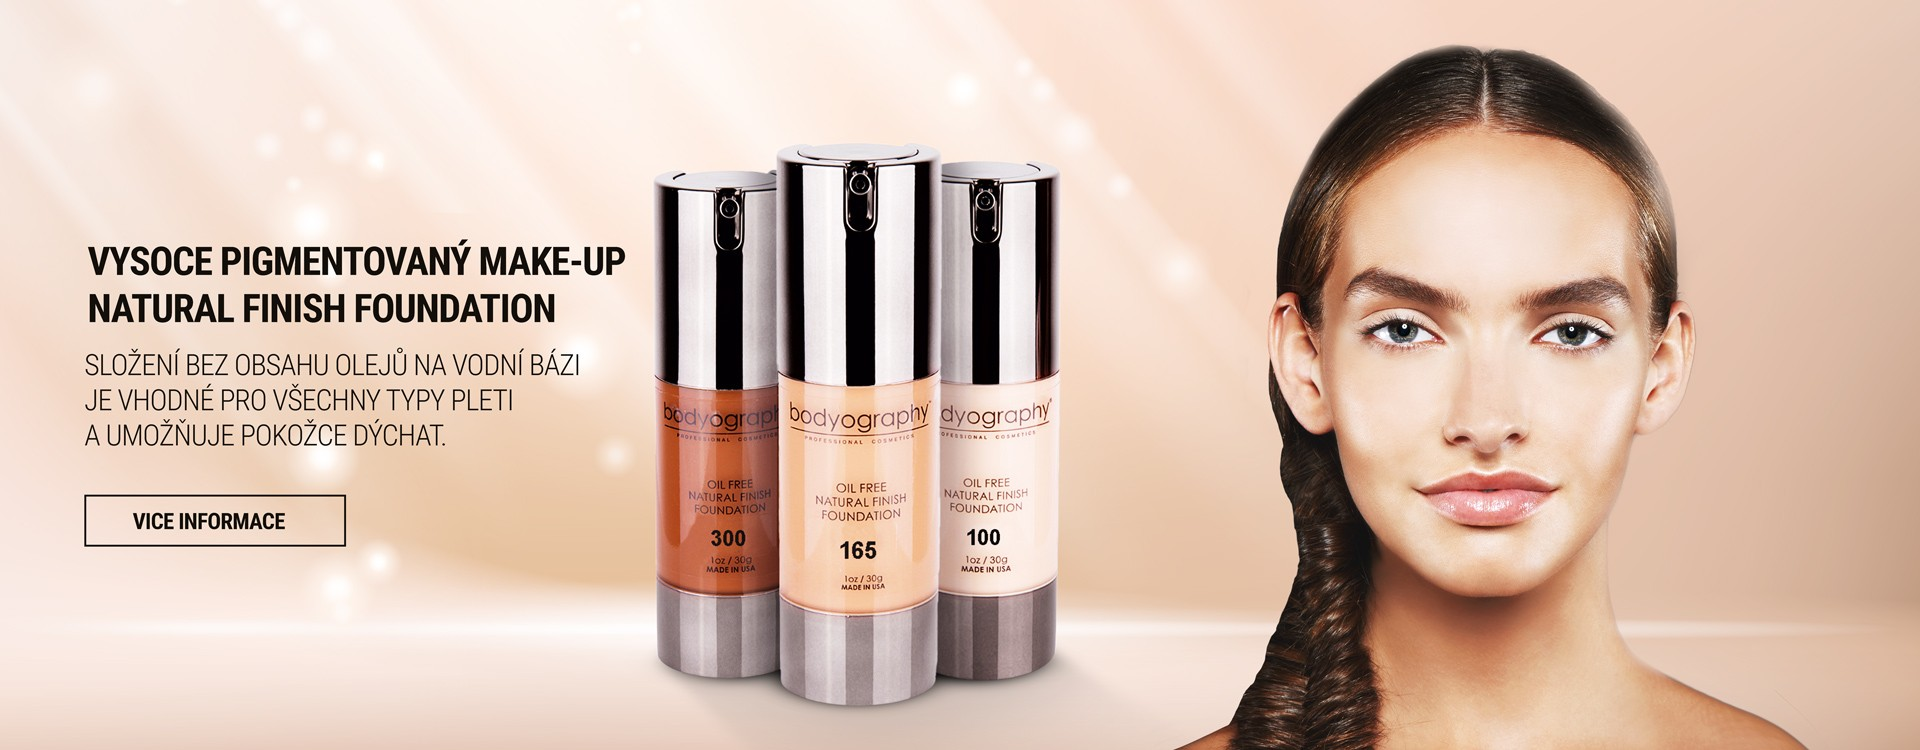 Vysoce pigmentovaný make-up Natural Finish Foundation